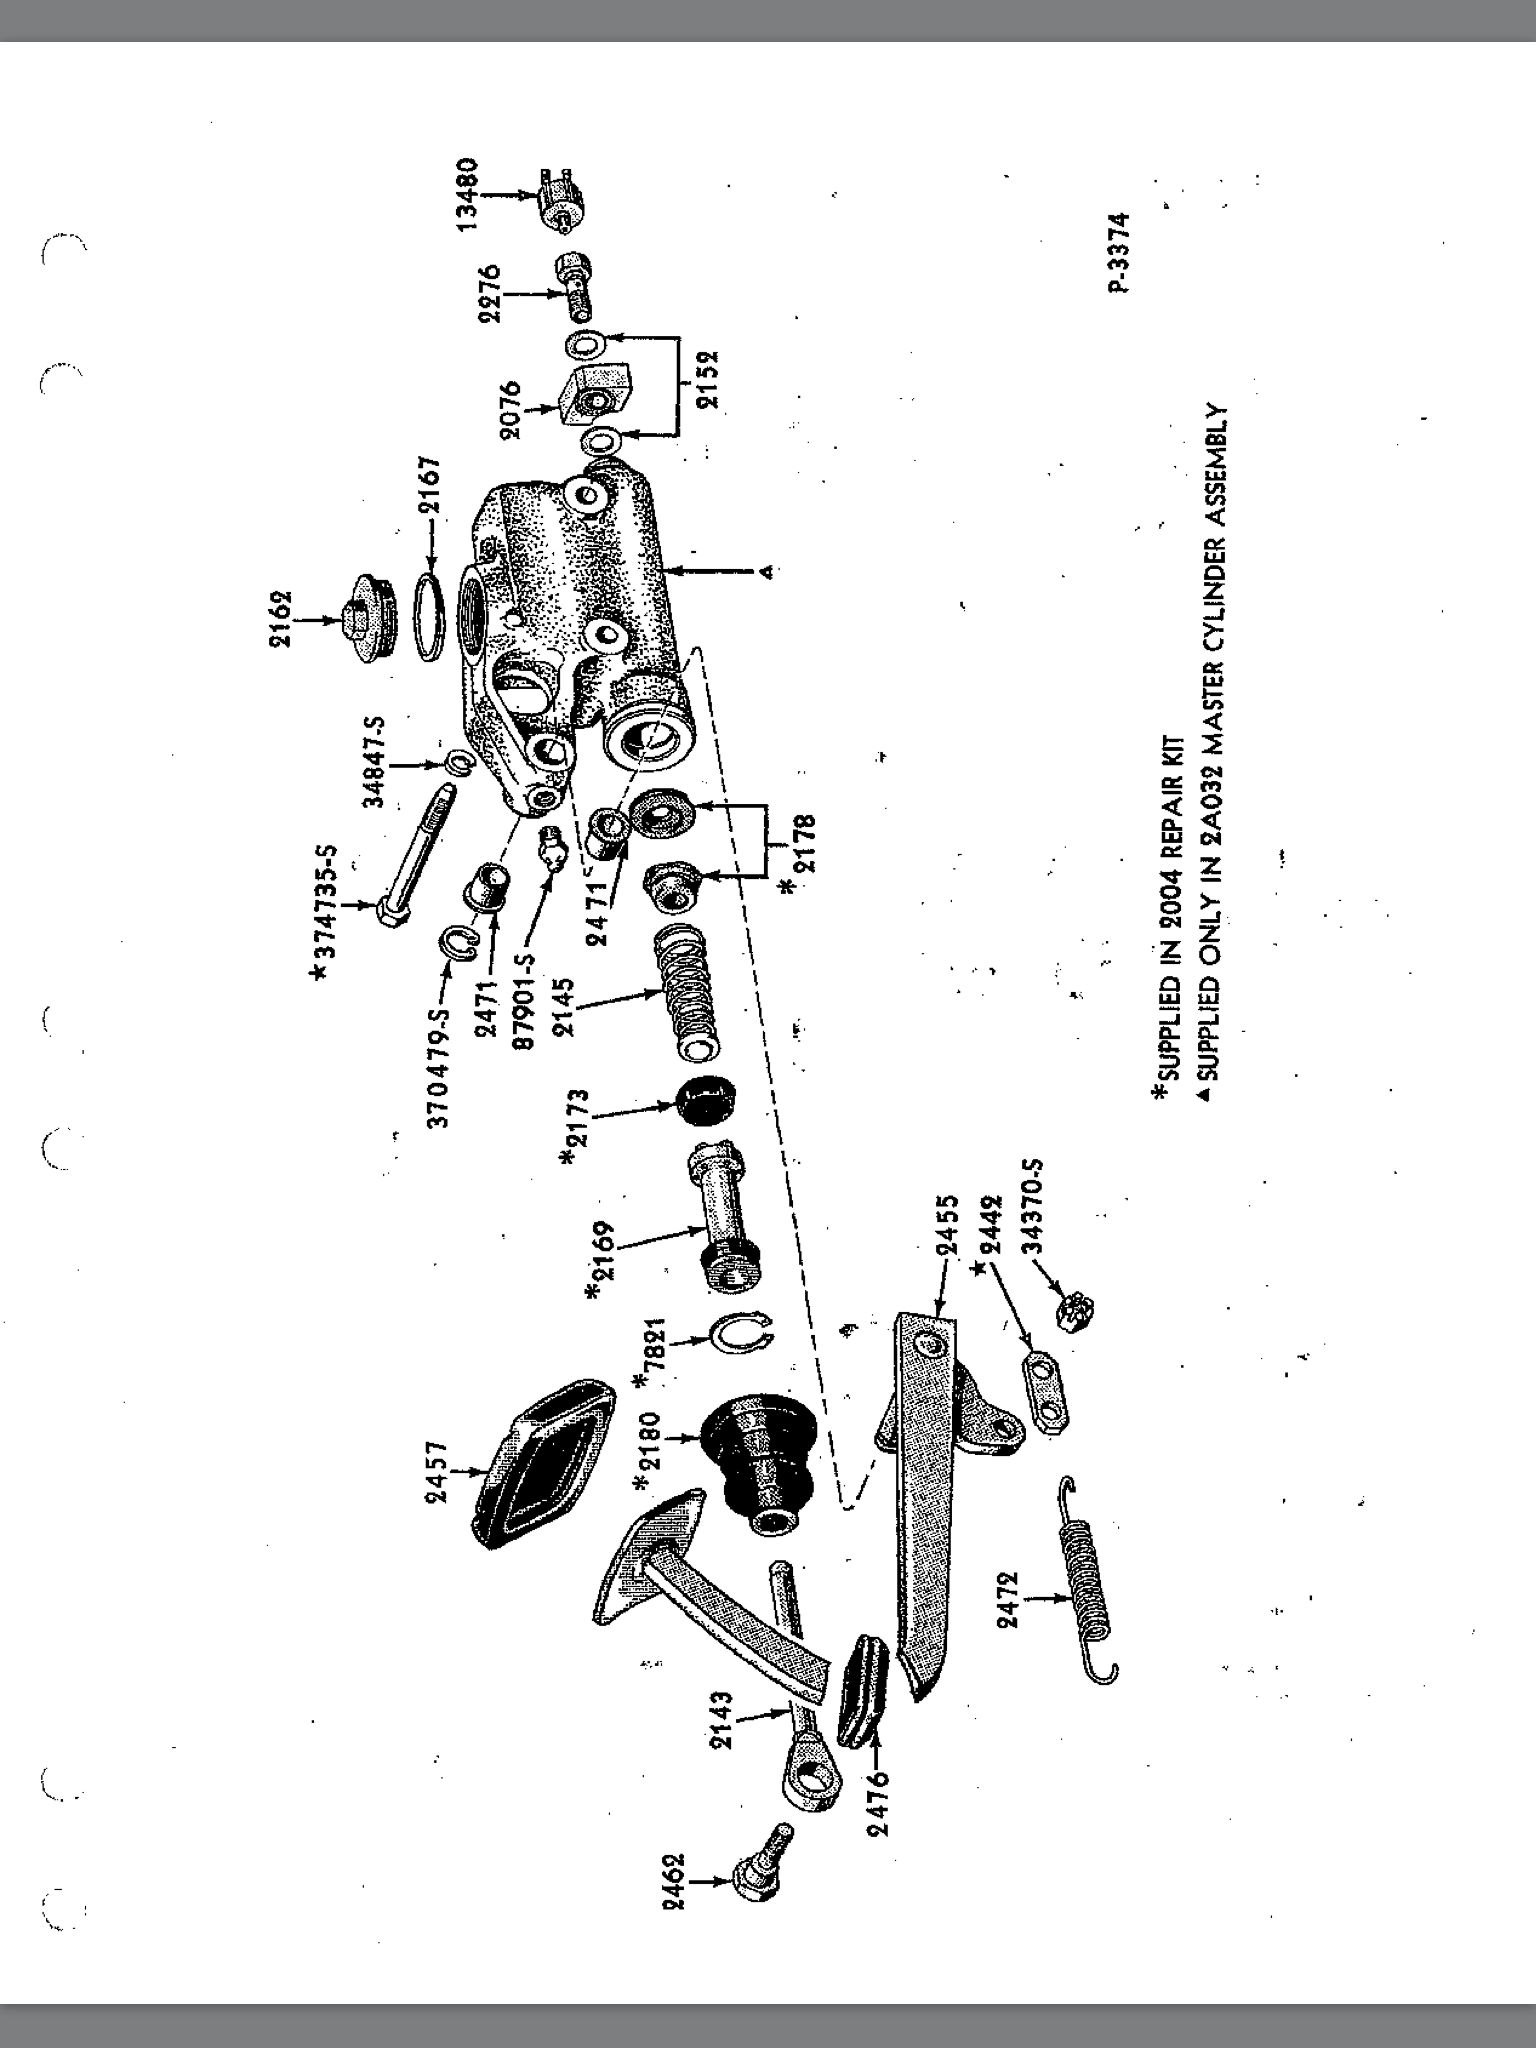 master cylinder exploded view exploded view trading strategies chf ford trucks buses [ 1536 x 2048 Pixel ]